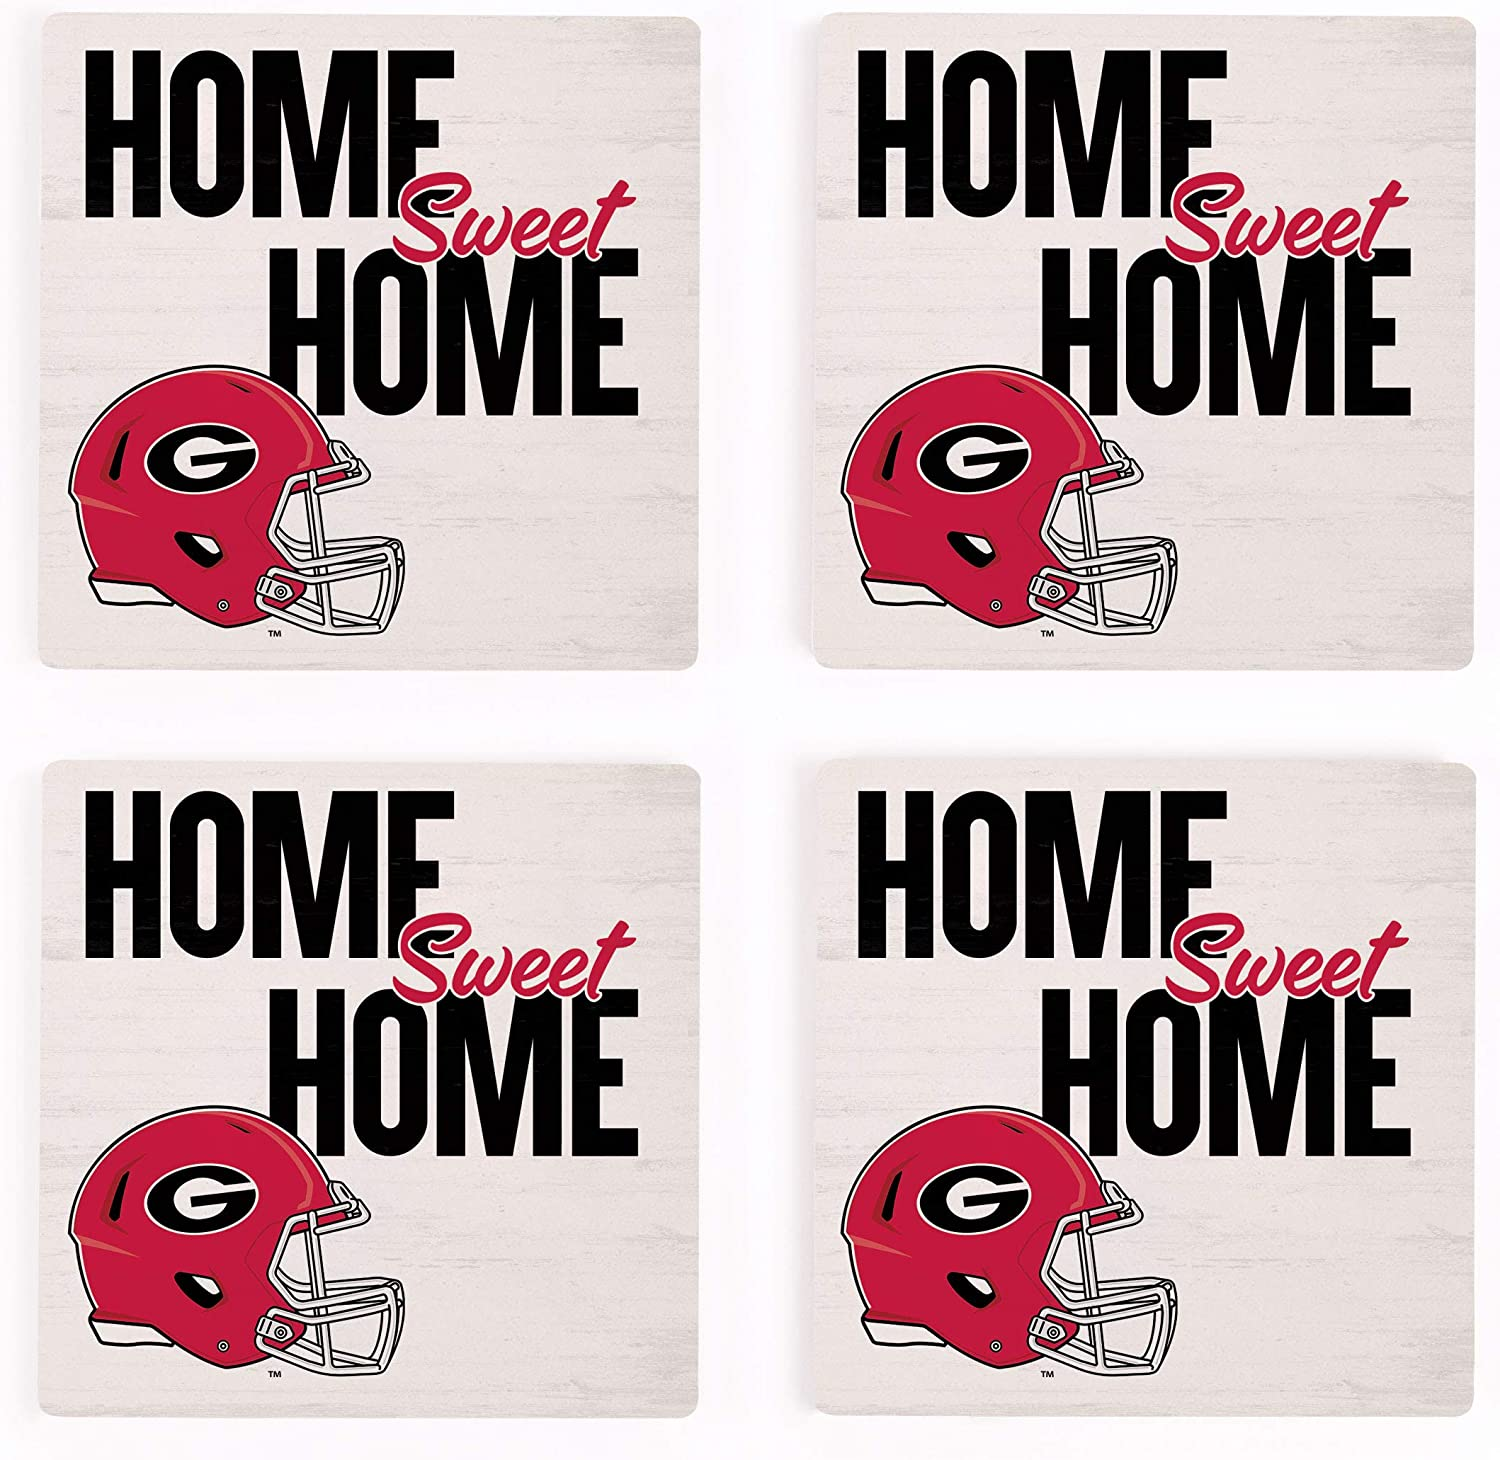 Home Sweet Home University of Georgia Bulldogs NCAA 4 x 4 Absorbent Ceramic Coasters Pack of 4